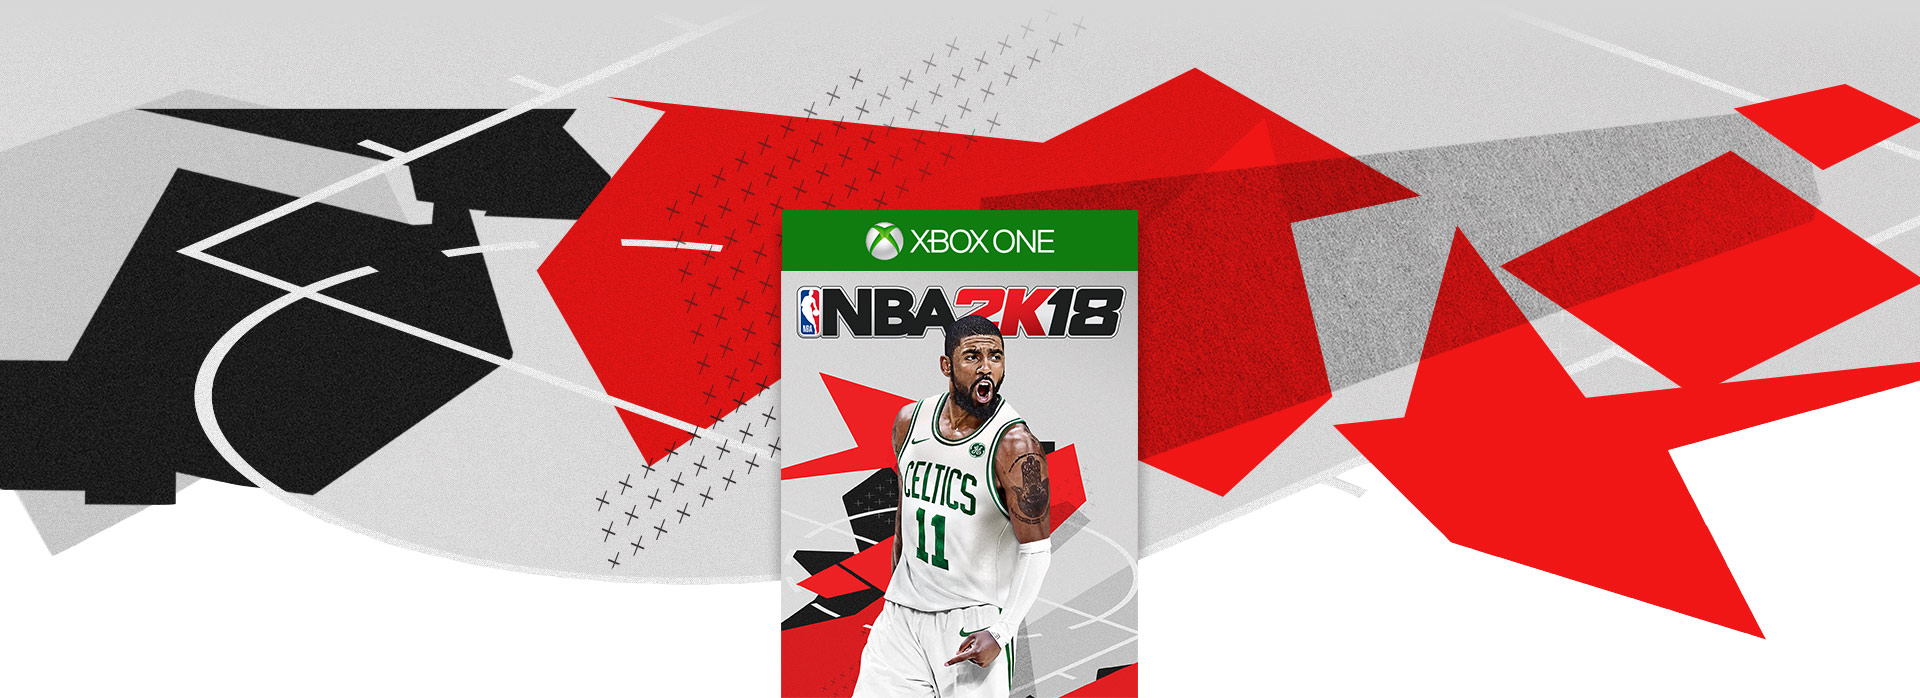 NBA 2k18 boxshot. Abstract basketball themed background